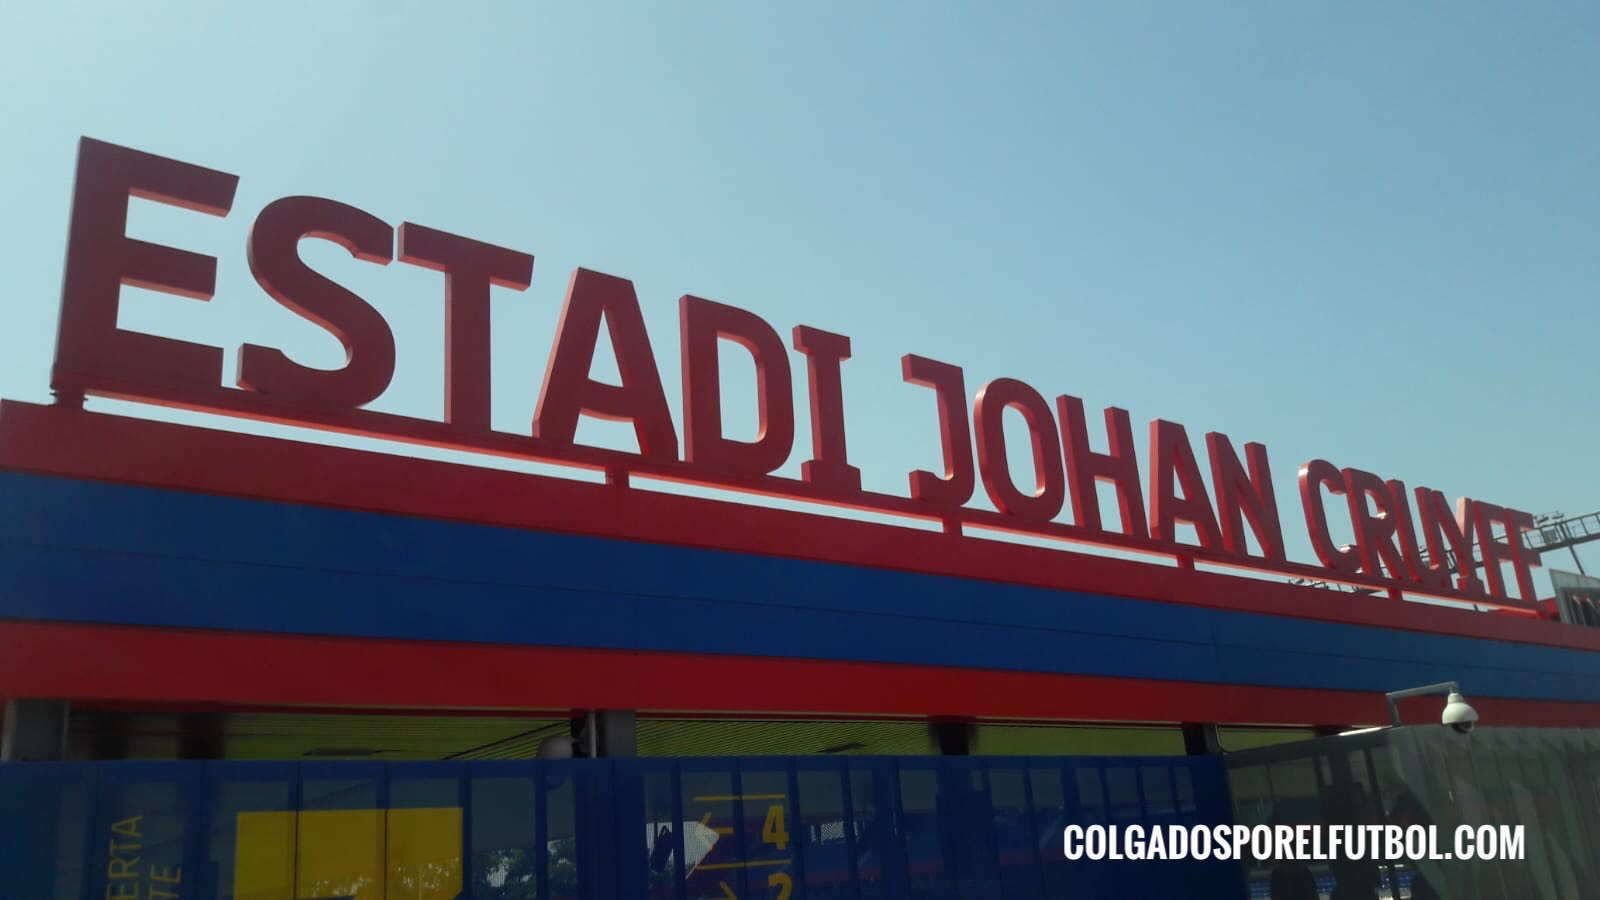 The beautiful new stadium Johan Cruyff is now a reality